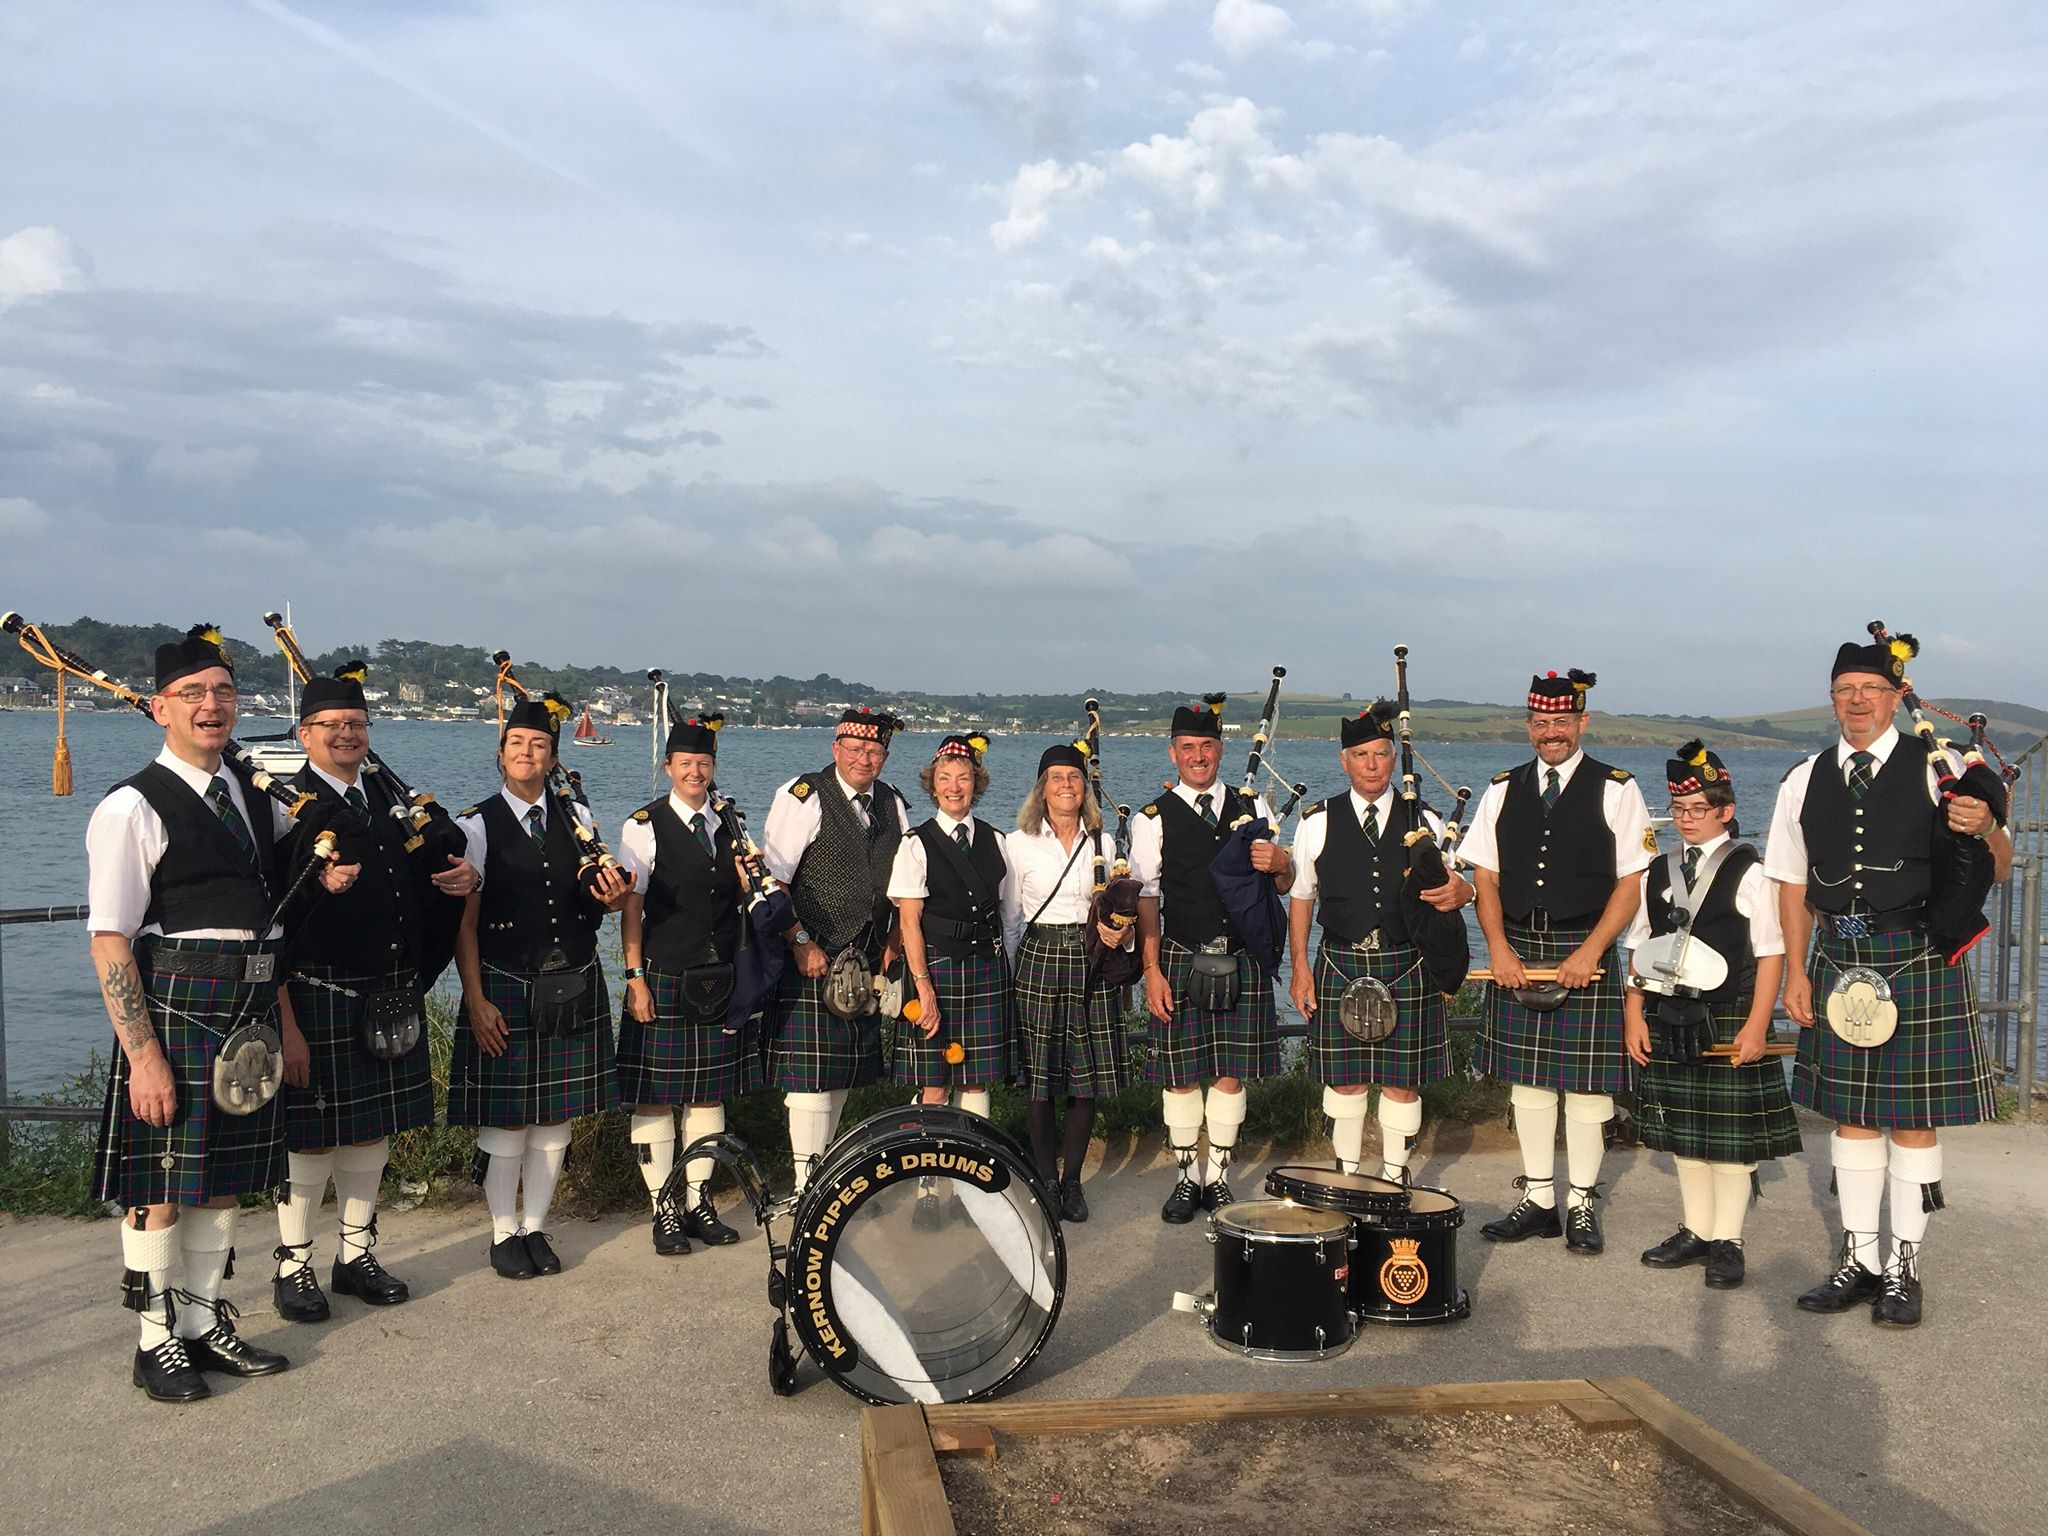 Kernow Pipes and Drums at Padstow carnival 2019